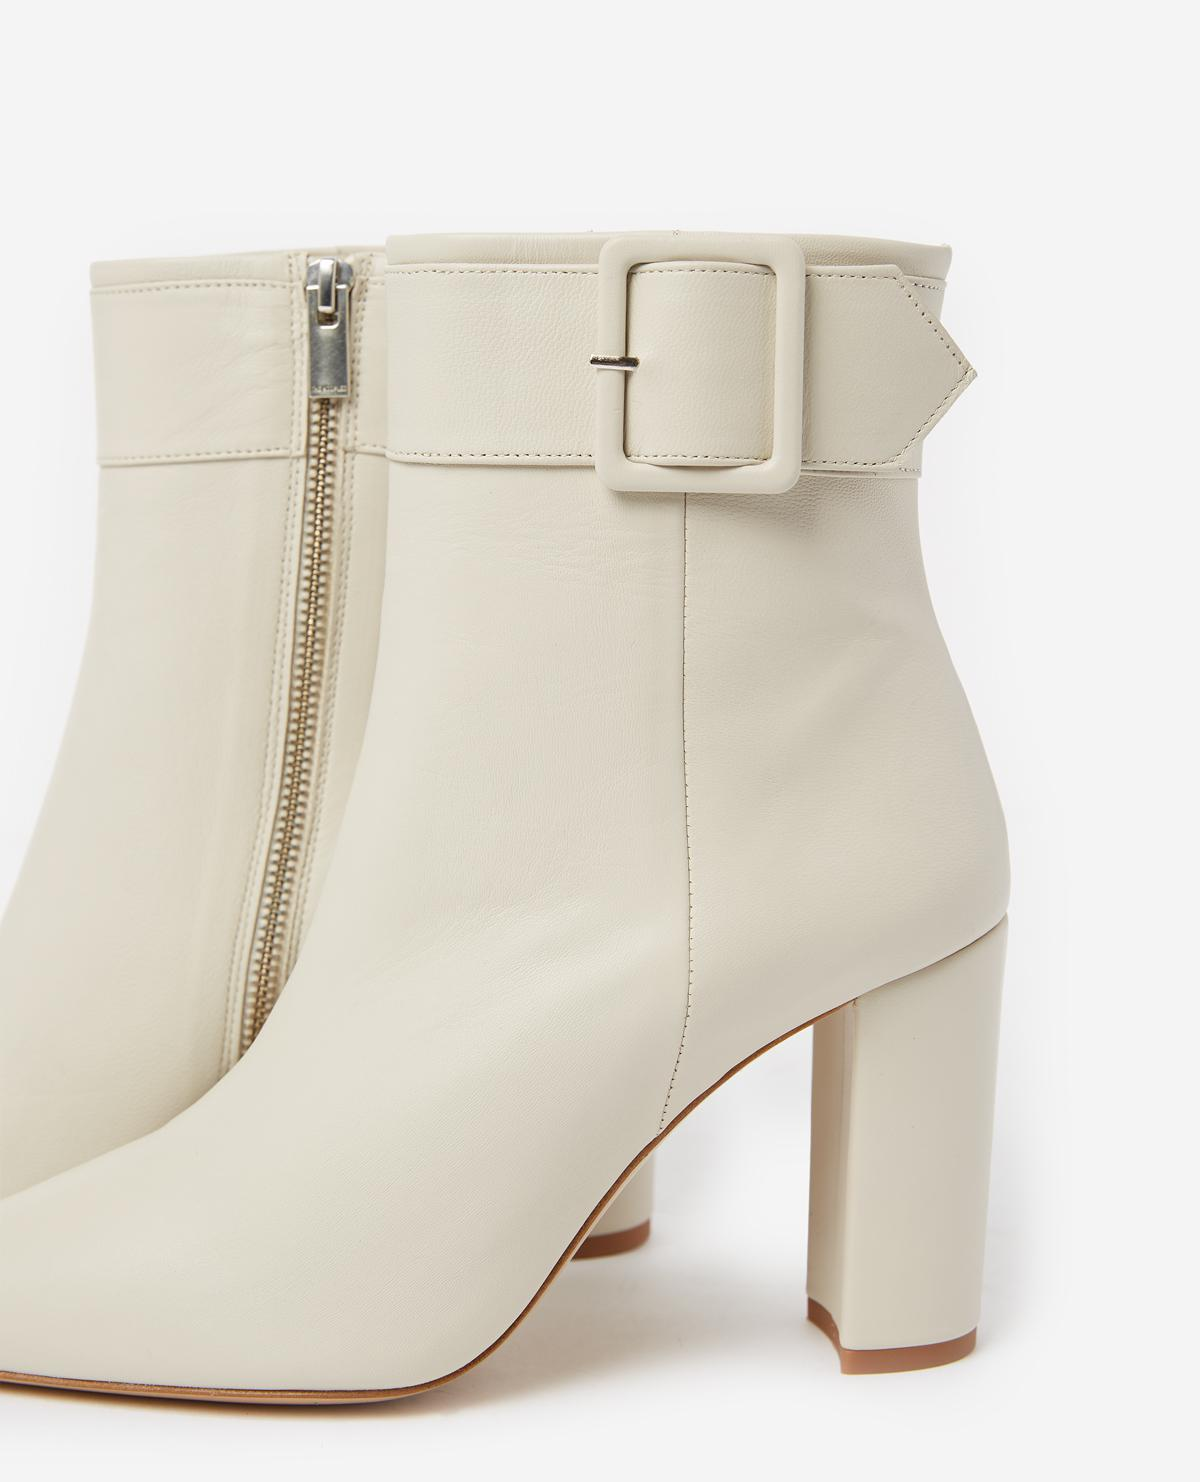 00b7efad69 The Kooples Heeled Ecru Ankle Boots in Natural - Lyst